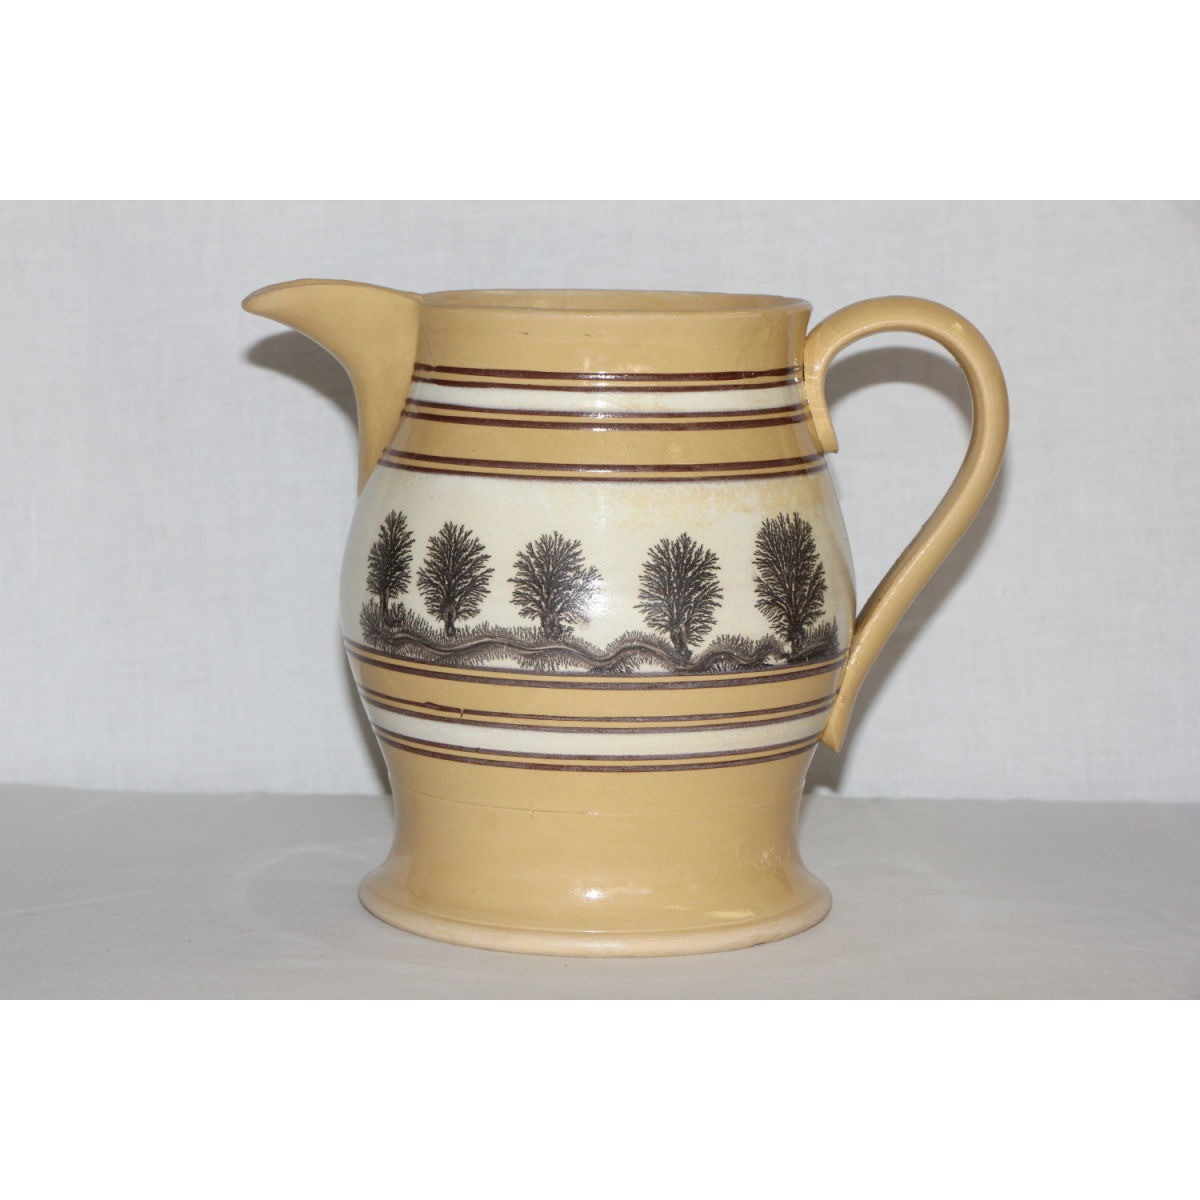 Stunning Black Decorated Yellow Ware Pitcher - Trees